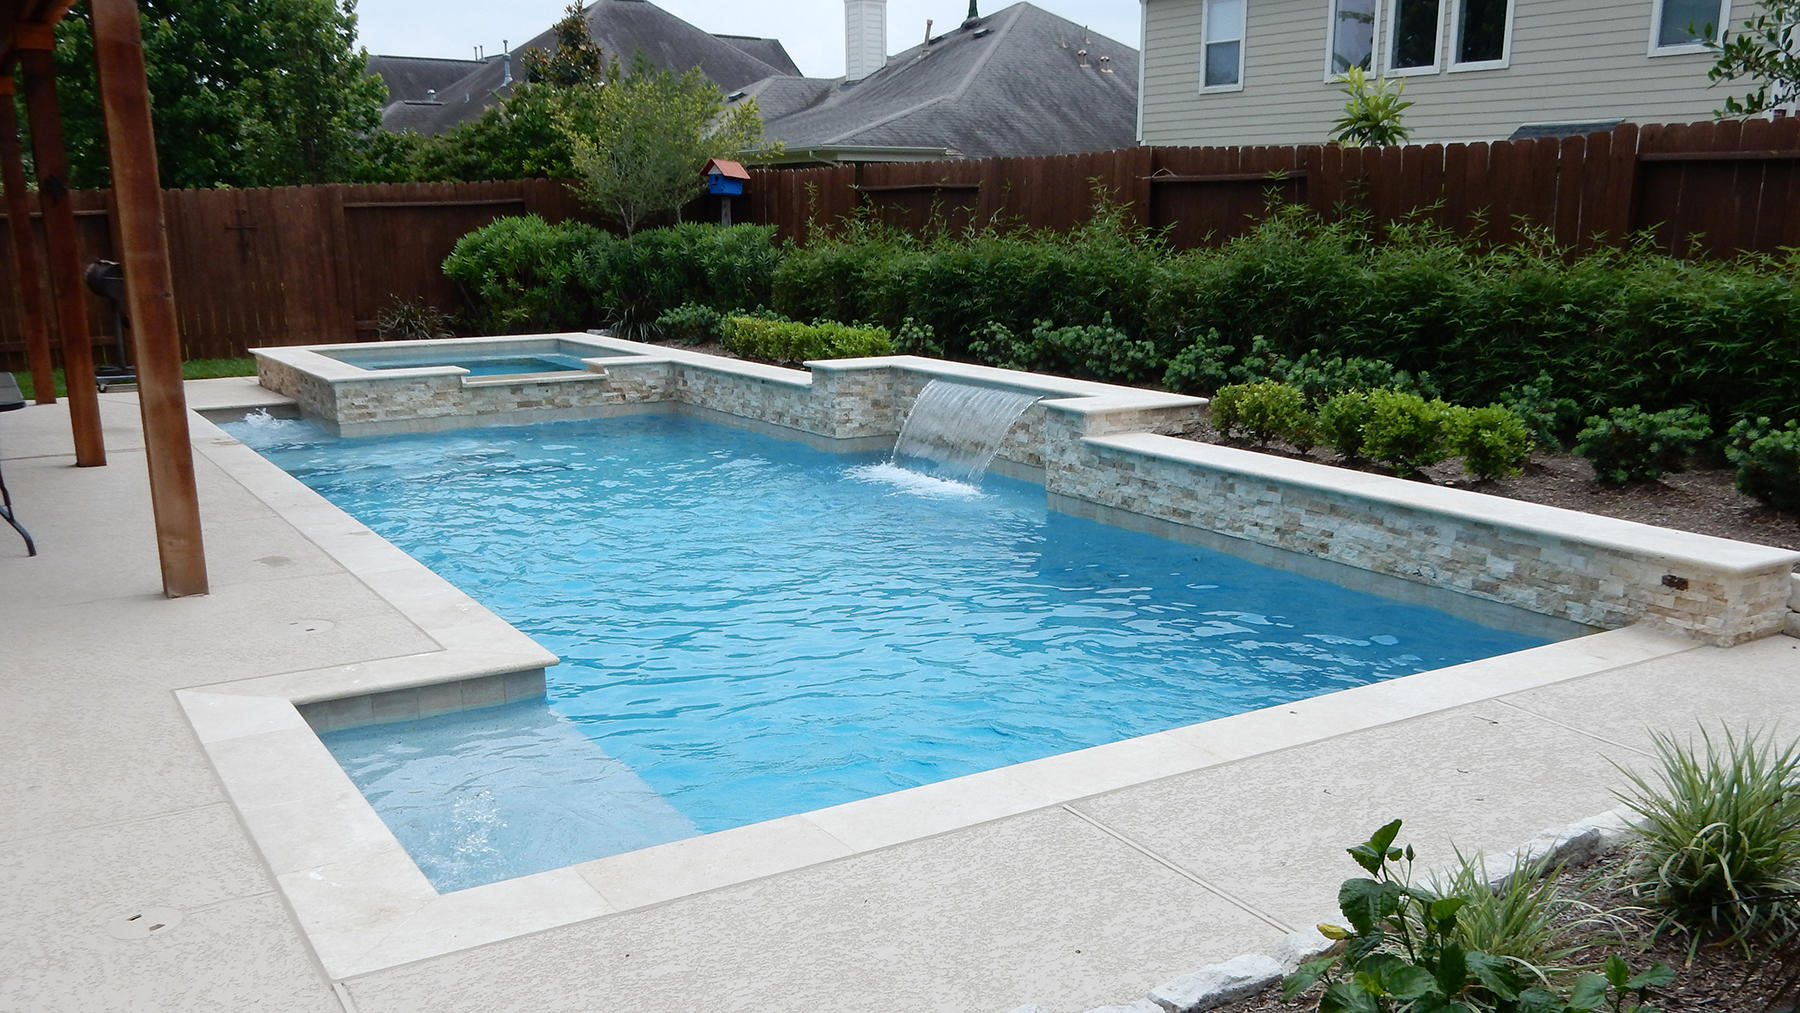 Pools plus llc coupons near me in katy 8coupons for Pool design katy tx